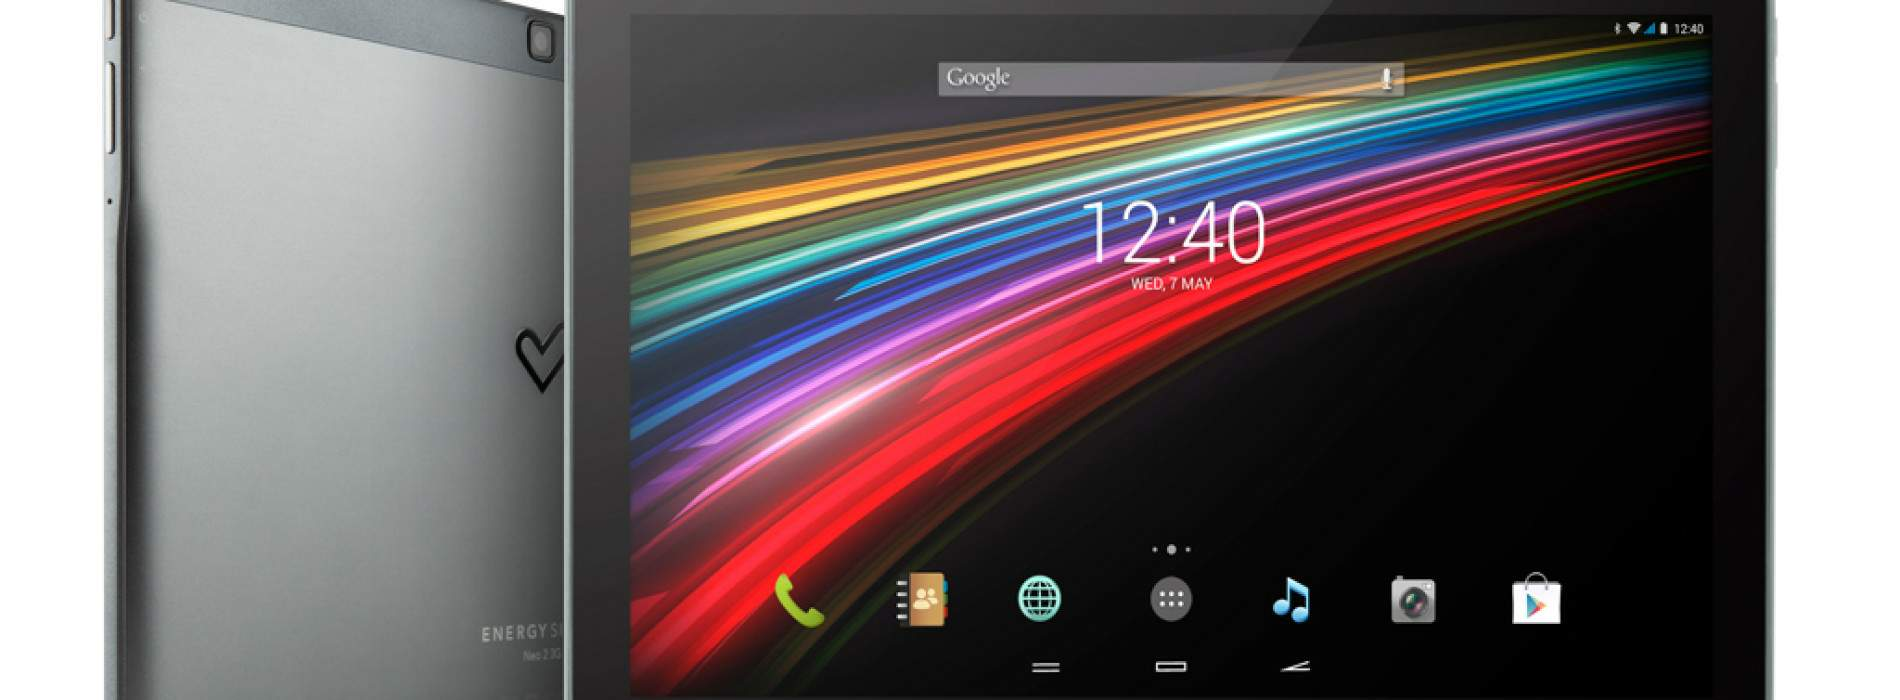 Concurso: Energy Tablet 10.1 Neo 2 3G